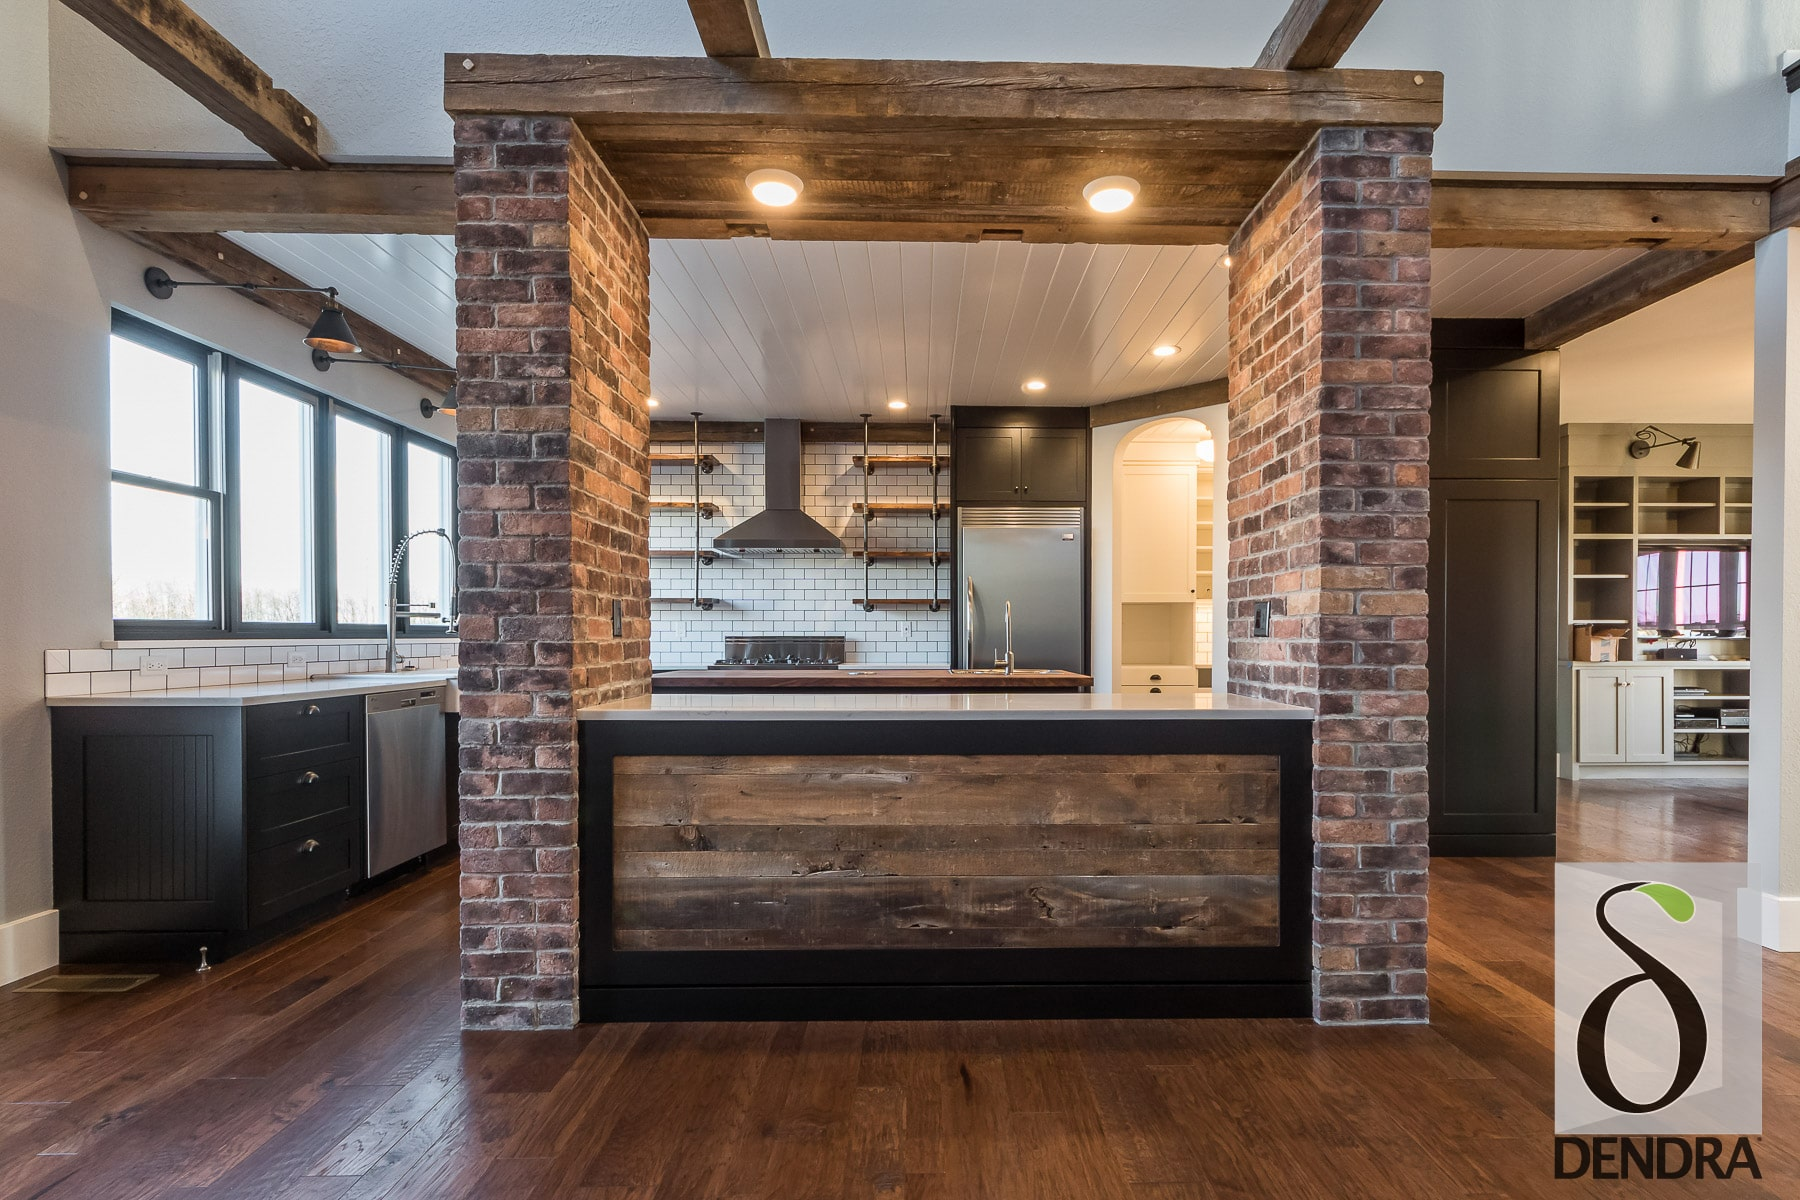 If We Don T Carry It We Will Find It We Have Lots Of Samples With Staining Reclaimed Wood Etc Remodeling Is Ultimately How You Will Make A Space Truly